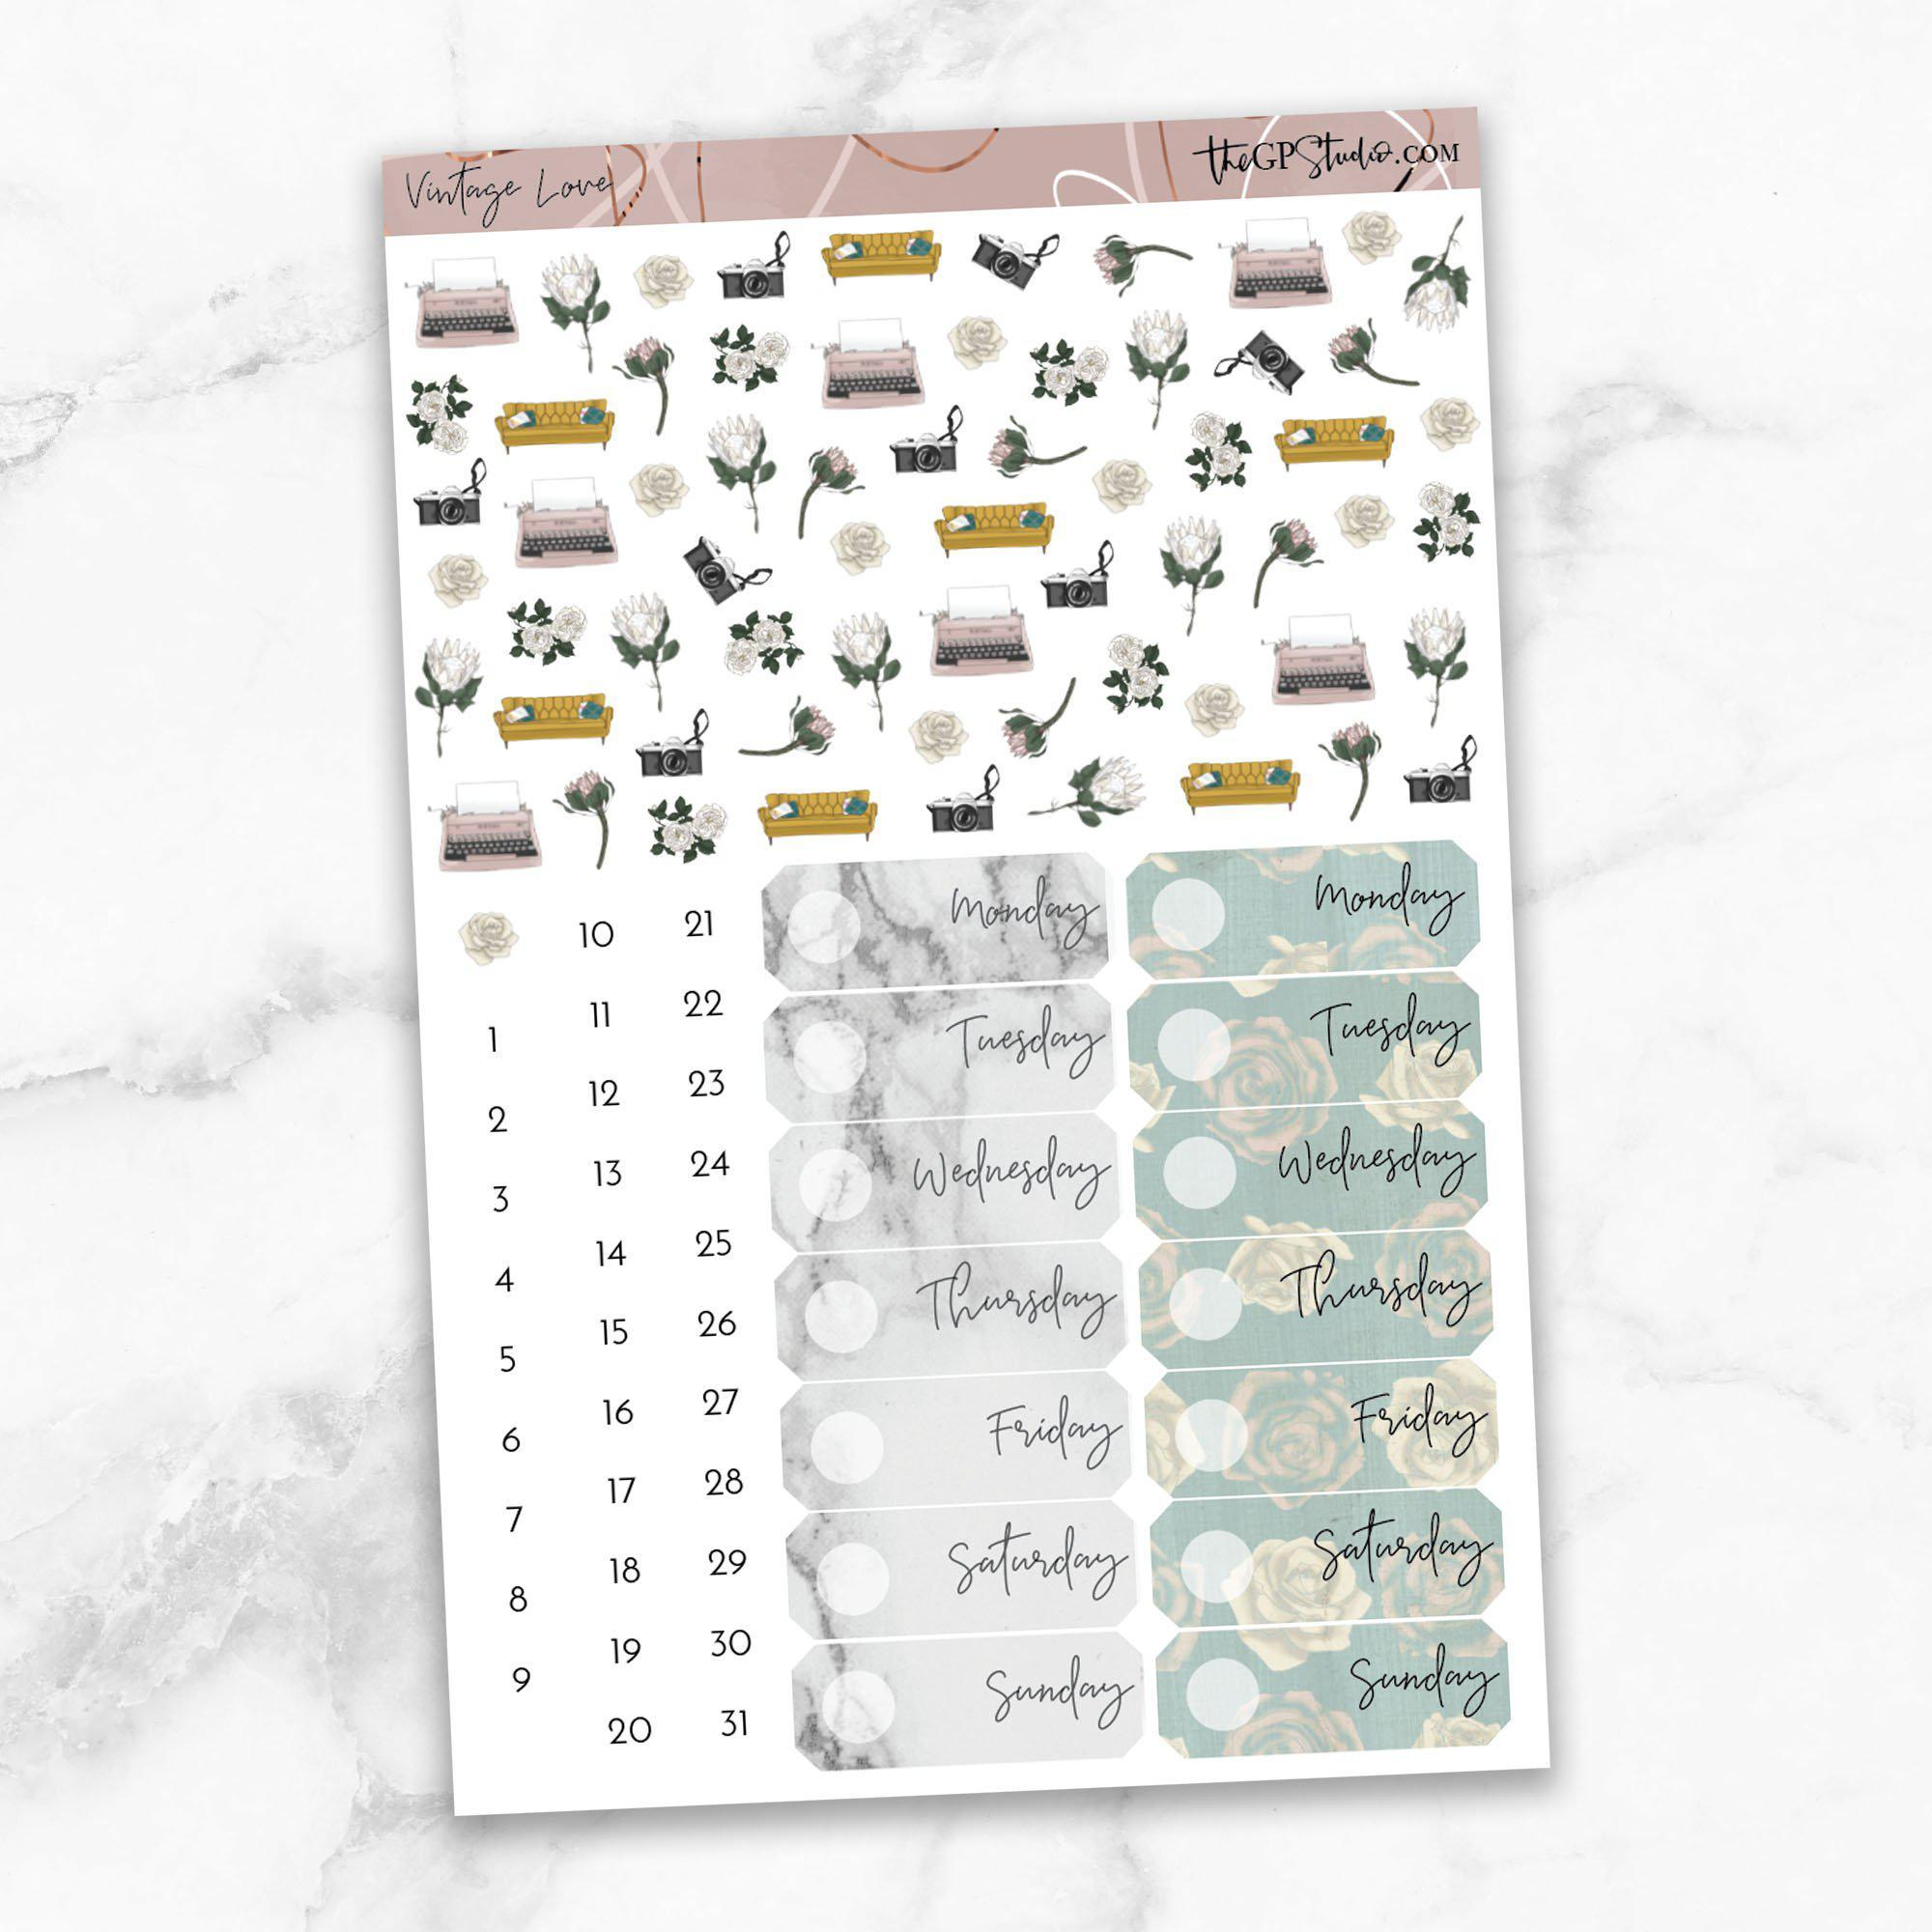 VINTAGE LOVE Deco & Date Cover Stickers-The GP Studio